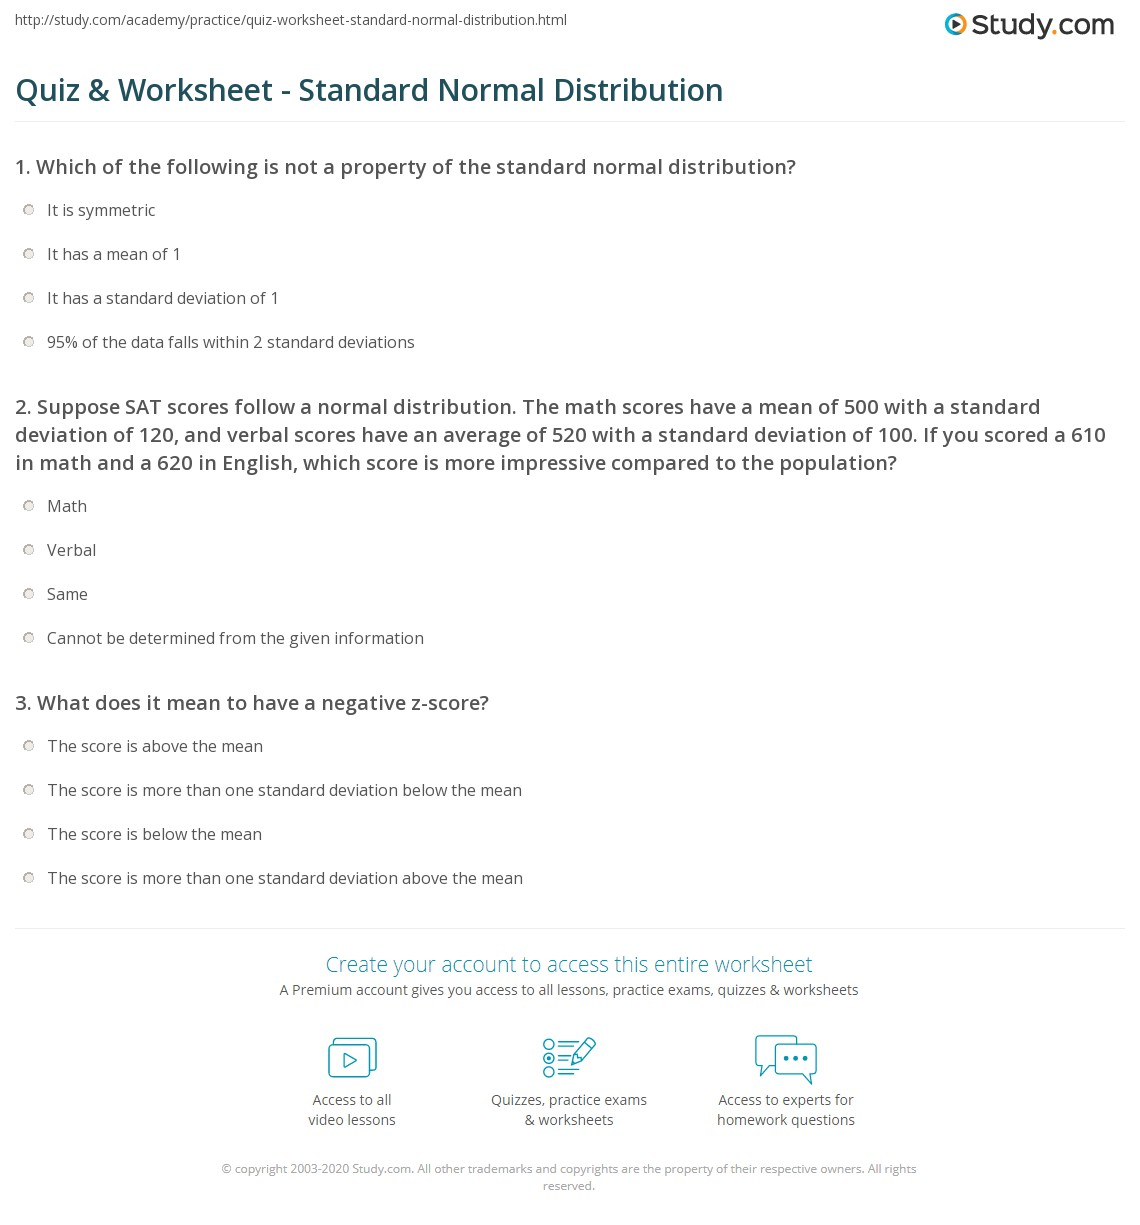 Worksheets Normal Distribution Worksheet quiz worksheet standard normal distribution study com suppose sat scores follow a the math have mean of 500 with deviation 120 and verbal hav